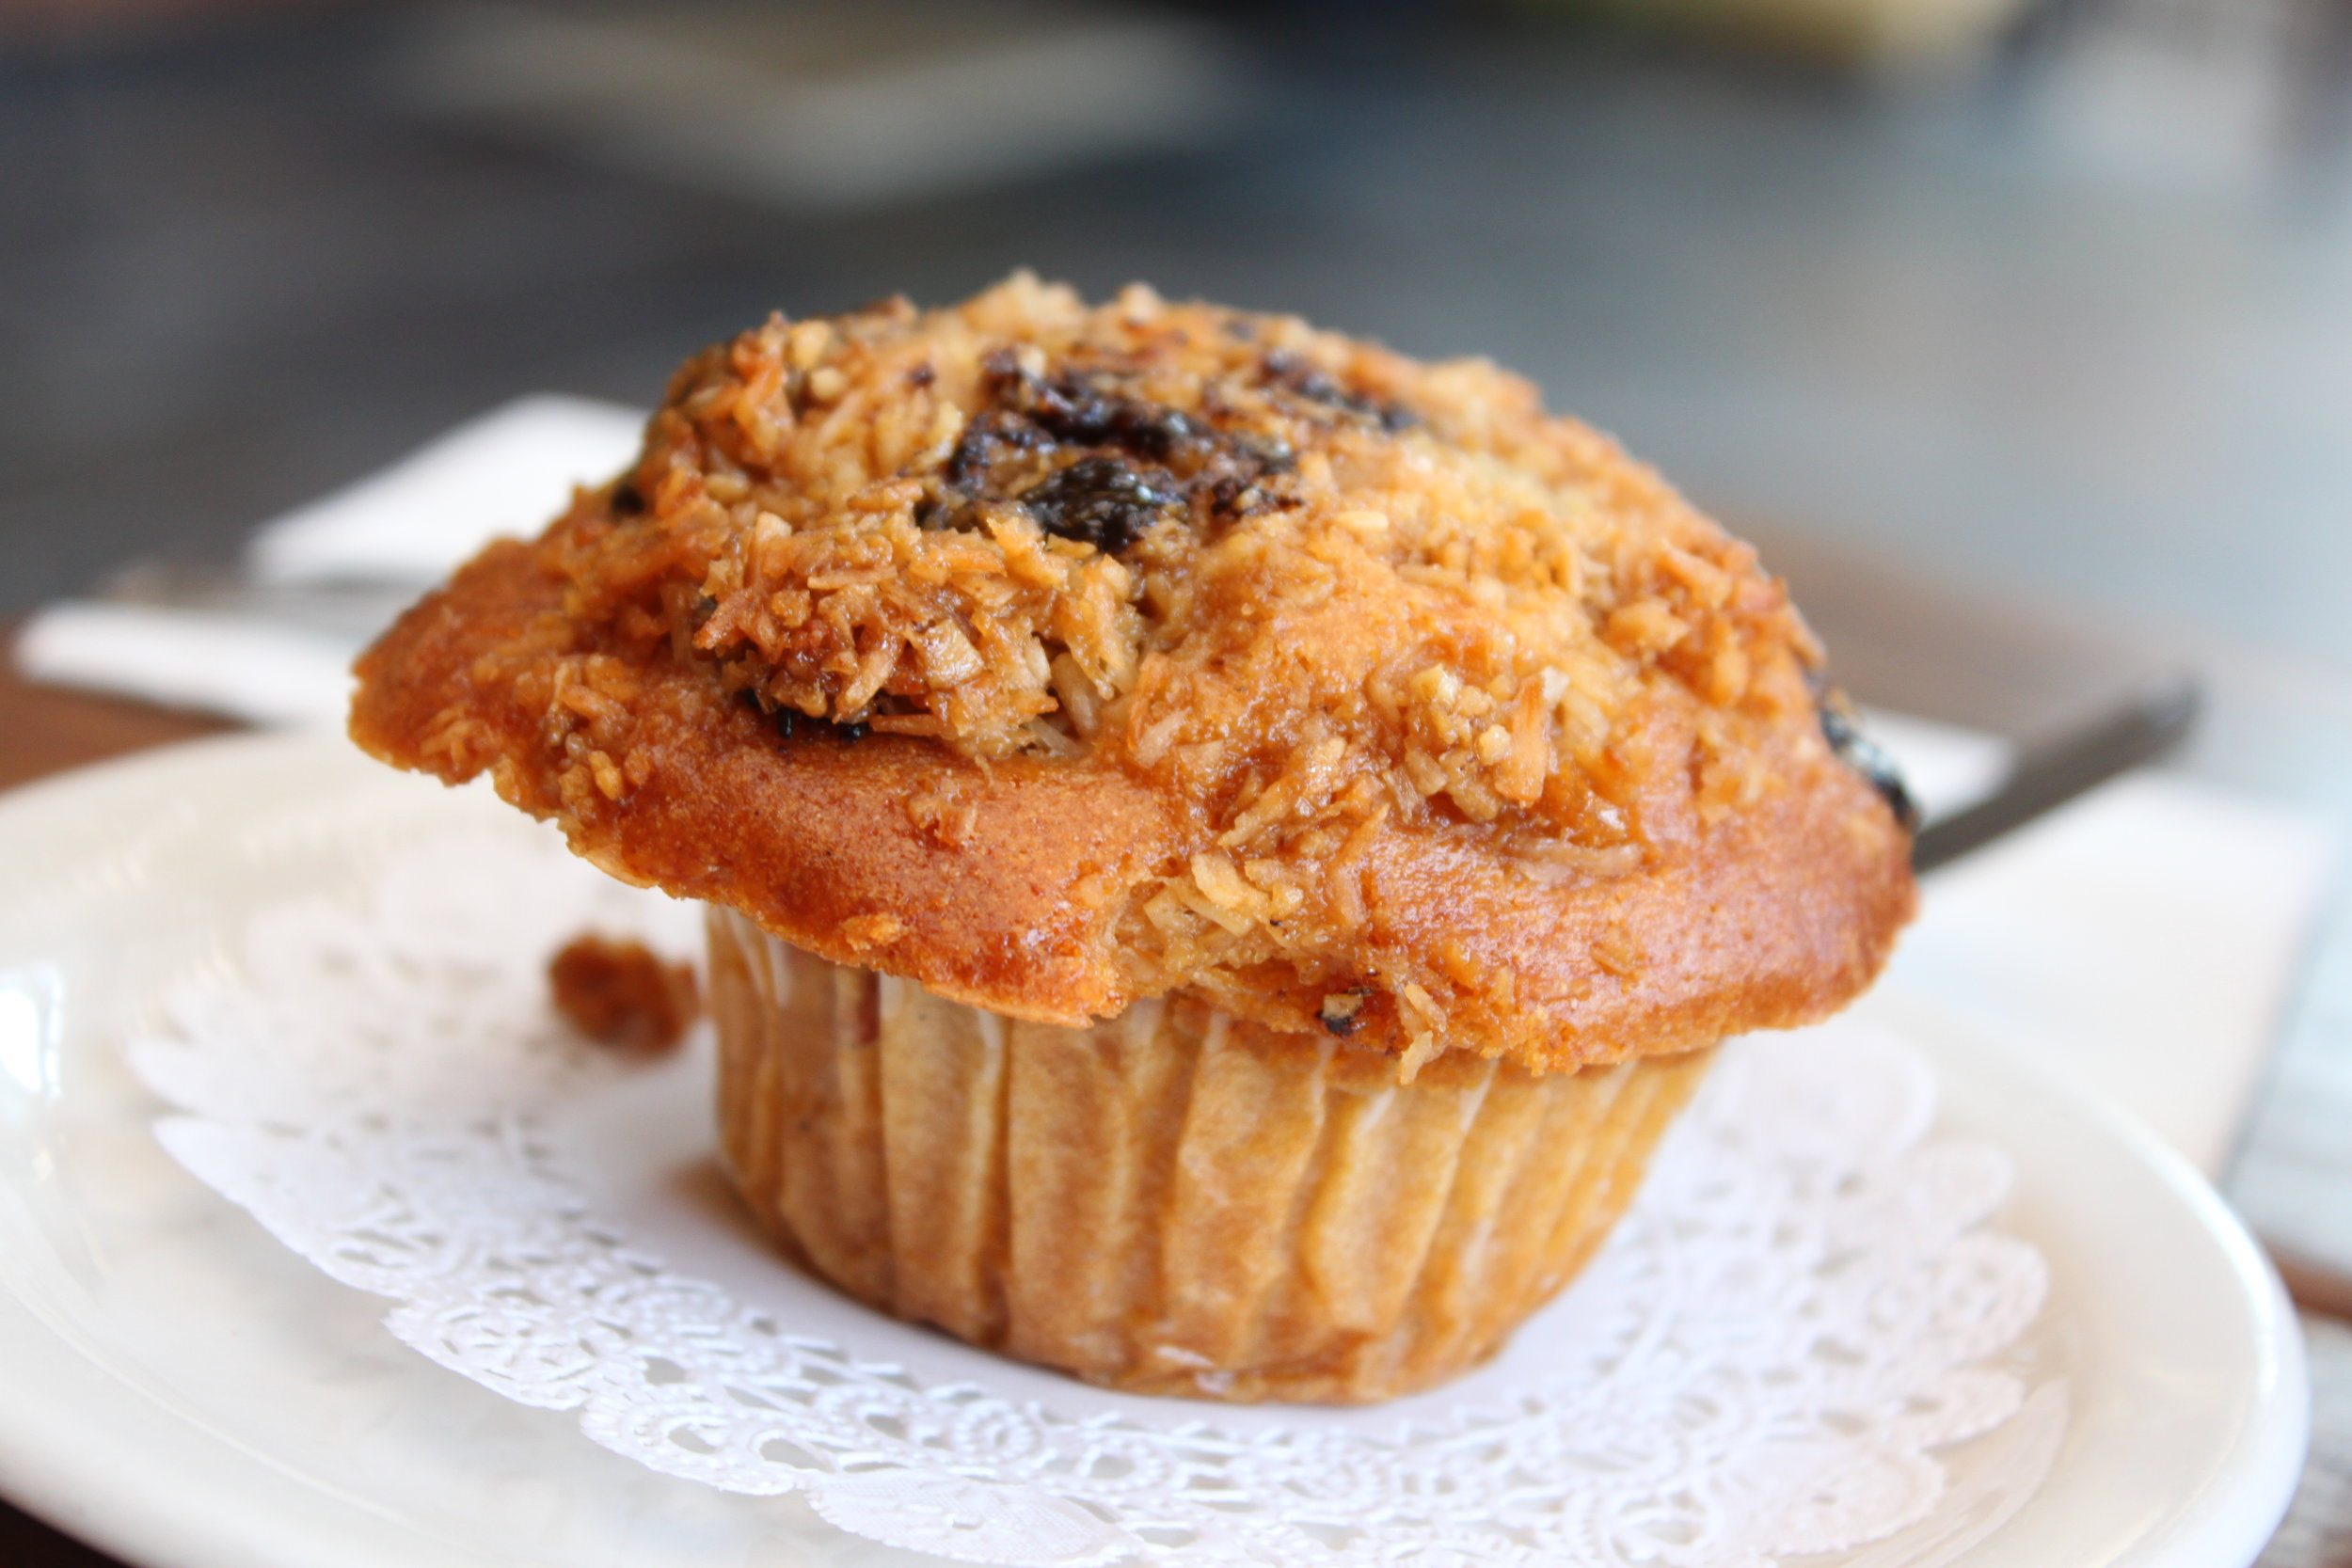 The Yellow Deli Muffins